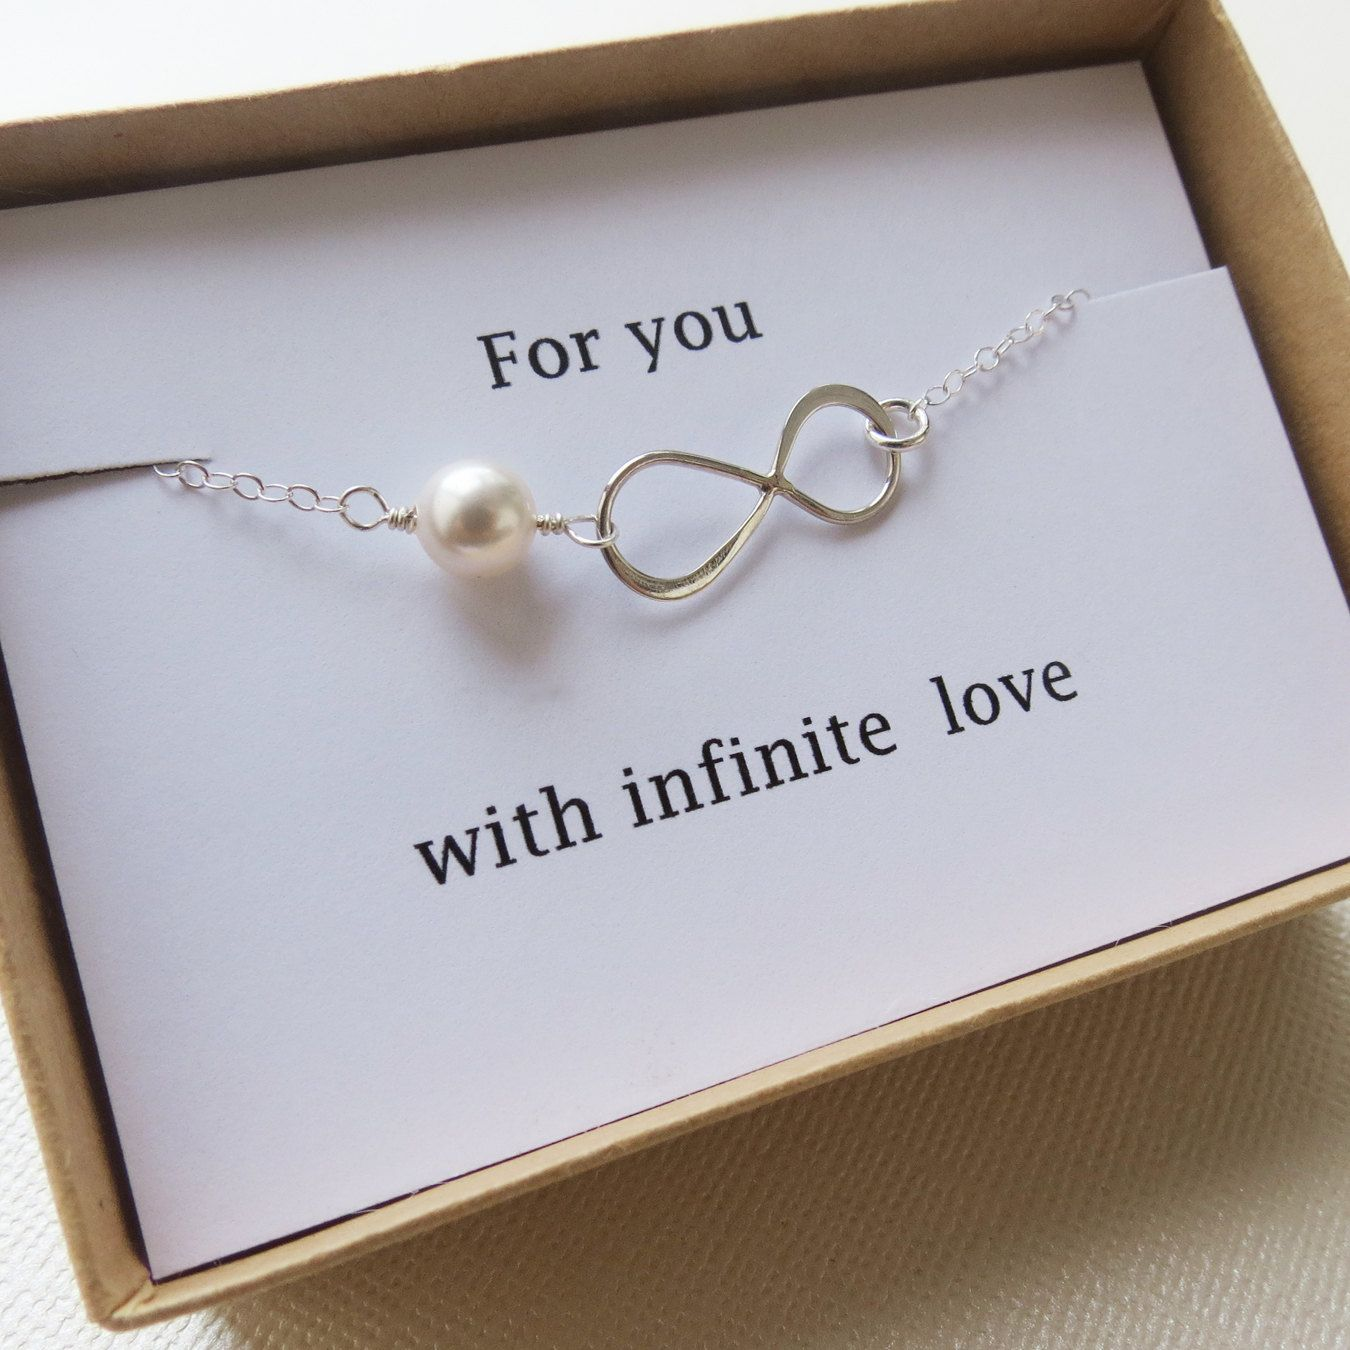 Christmas Gift Ideas For Girl Best Friends: Infinity Bracelet